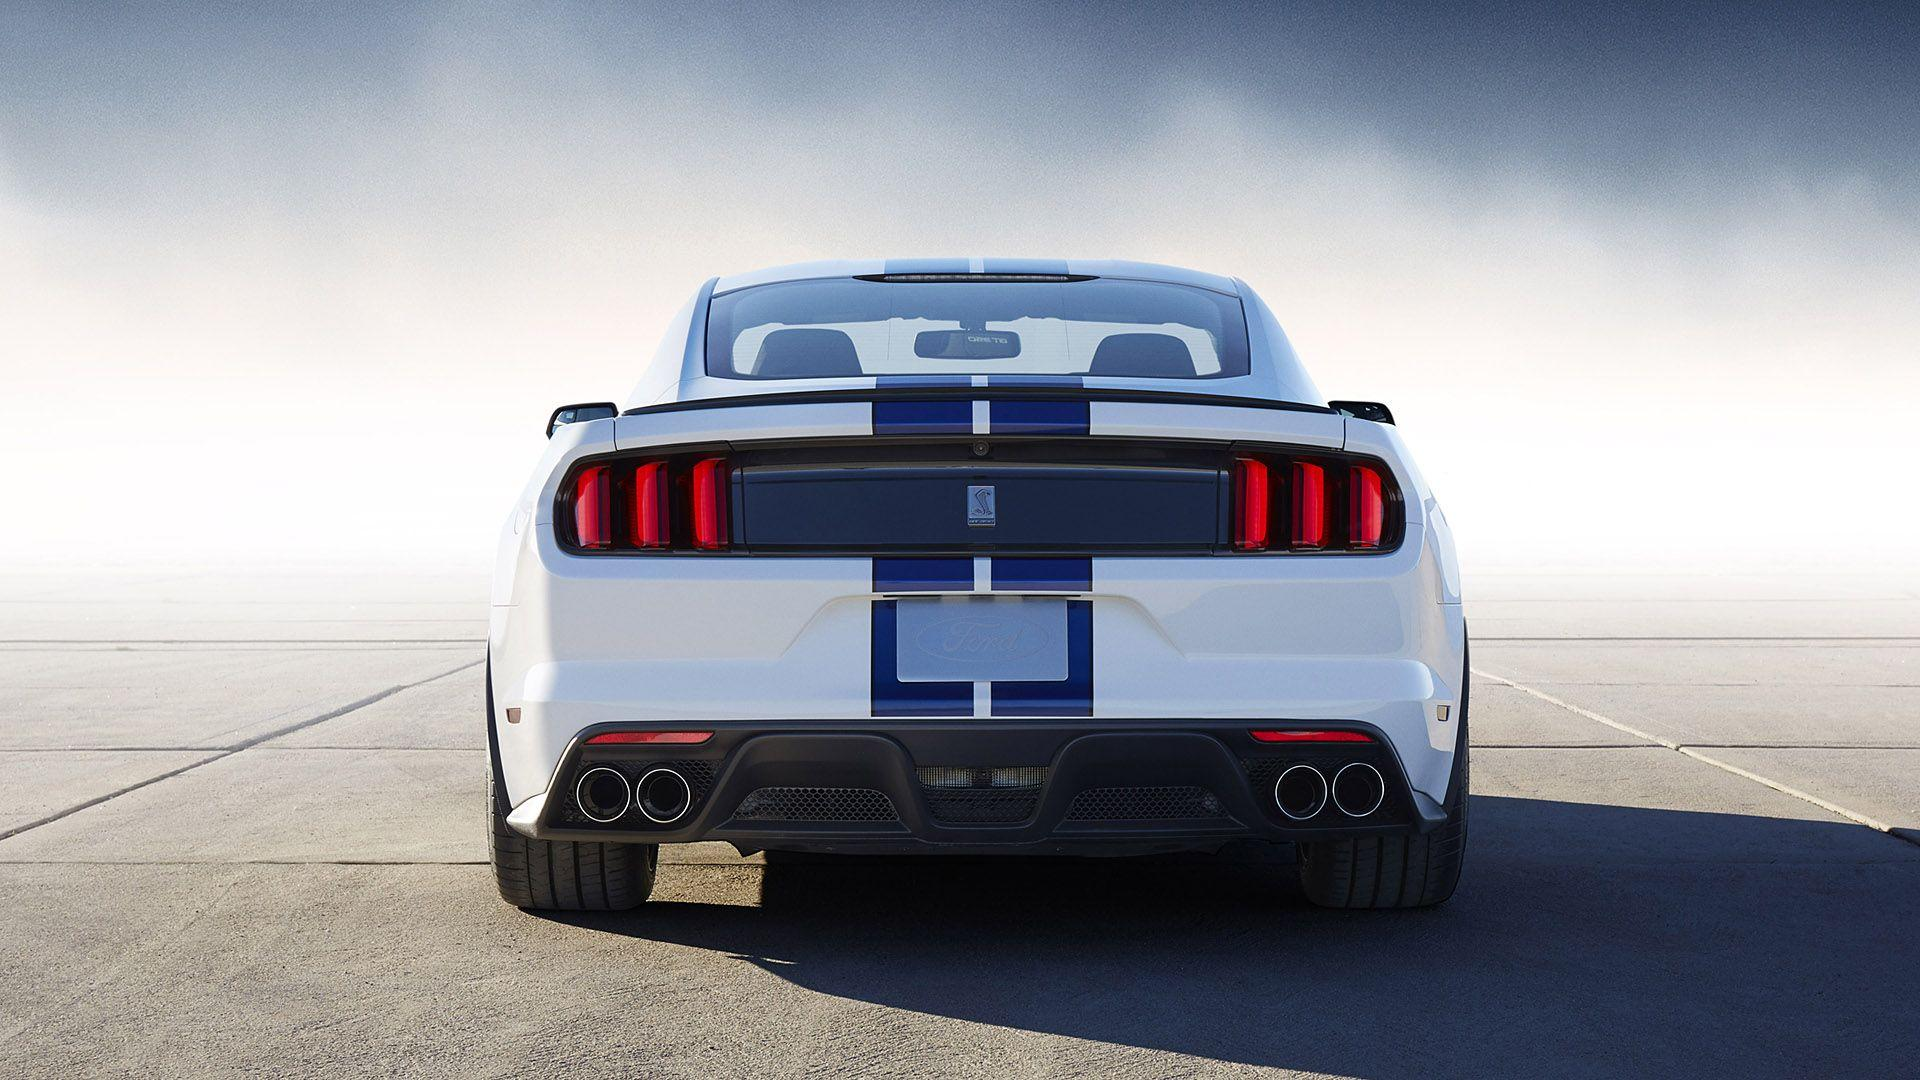 2016 Ford Shelby Mustang GT350 Wallpapers & HD Image